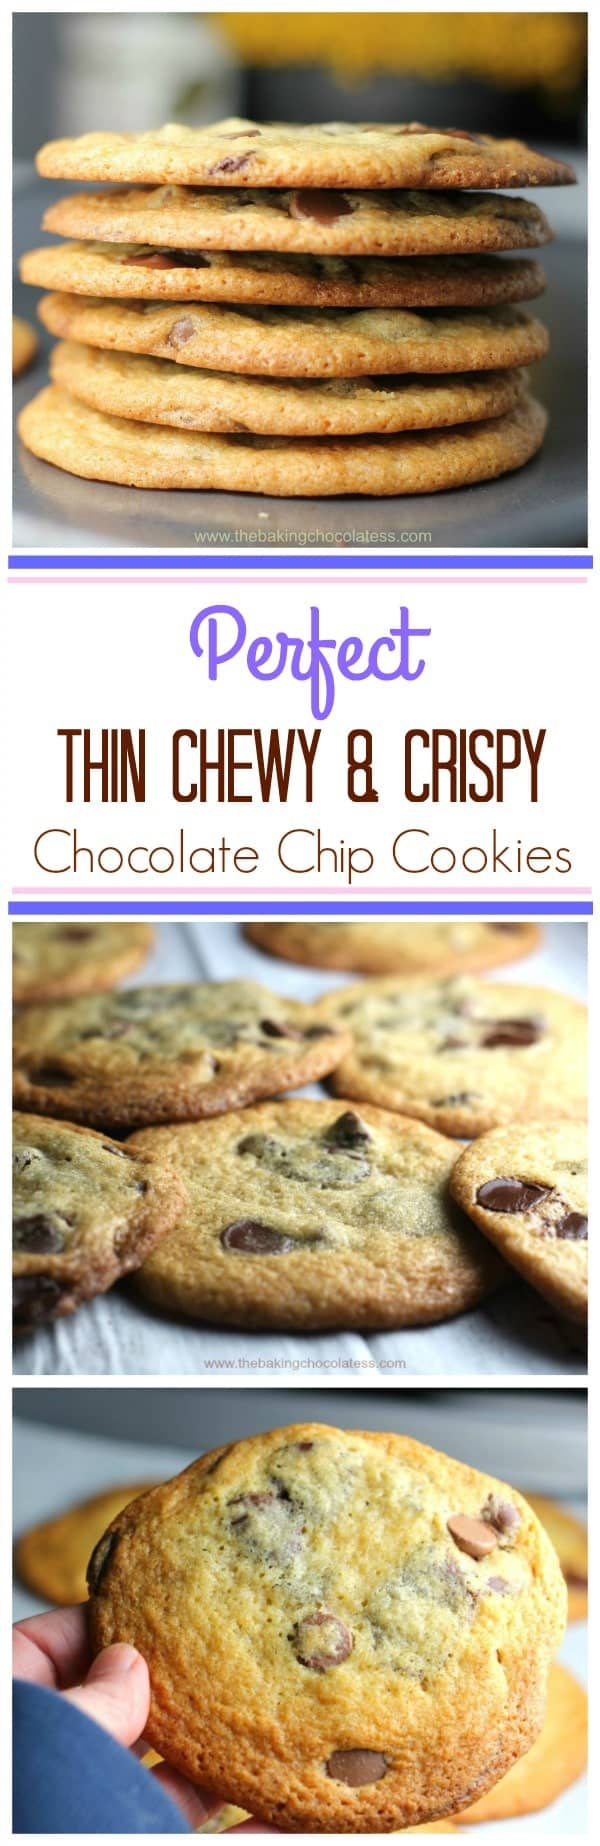 Perfect Thin & Crispy Chocolate Chip Cookies